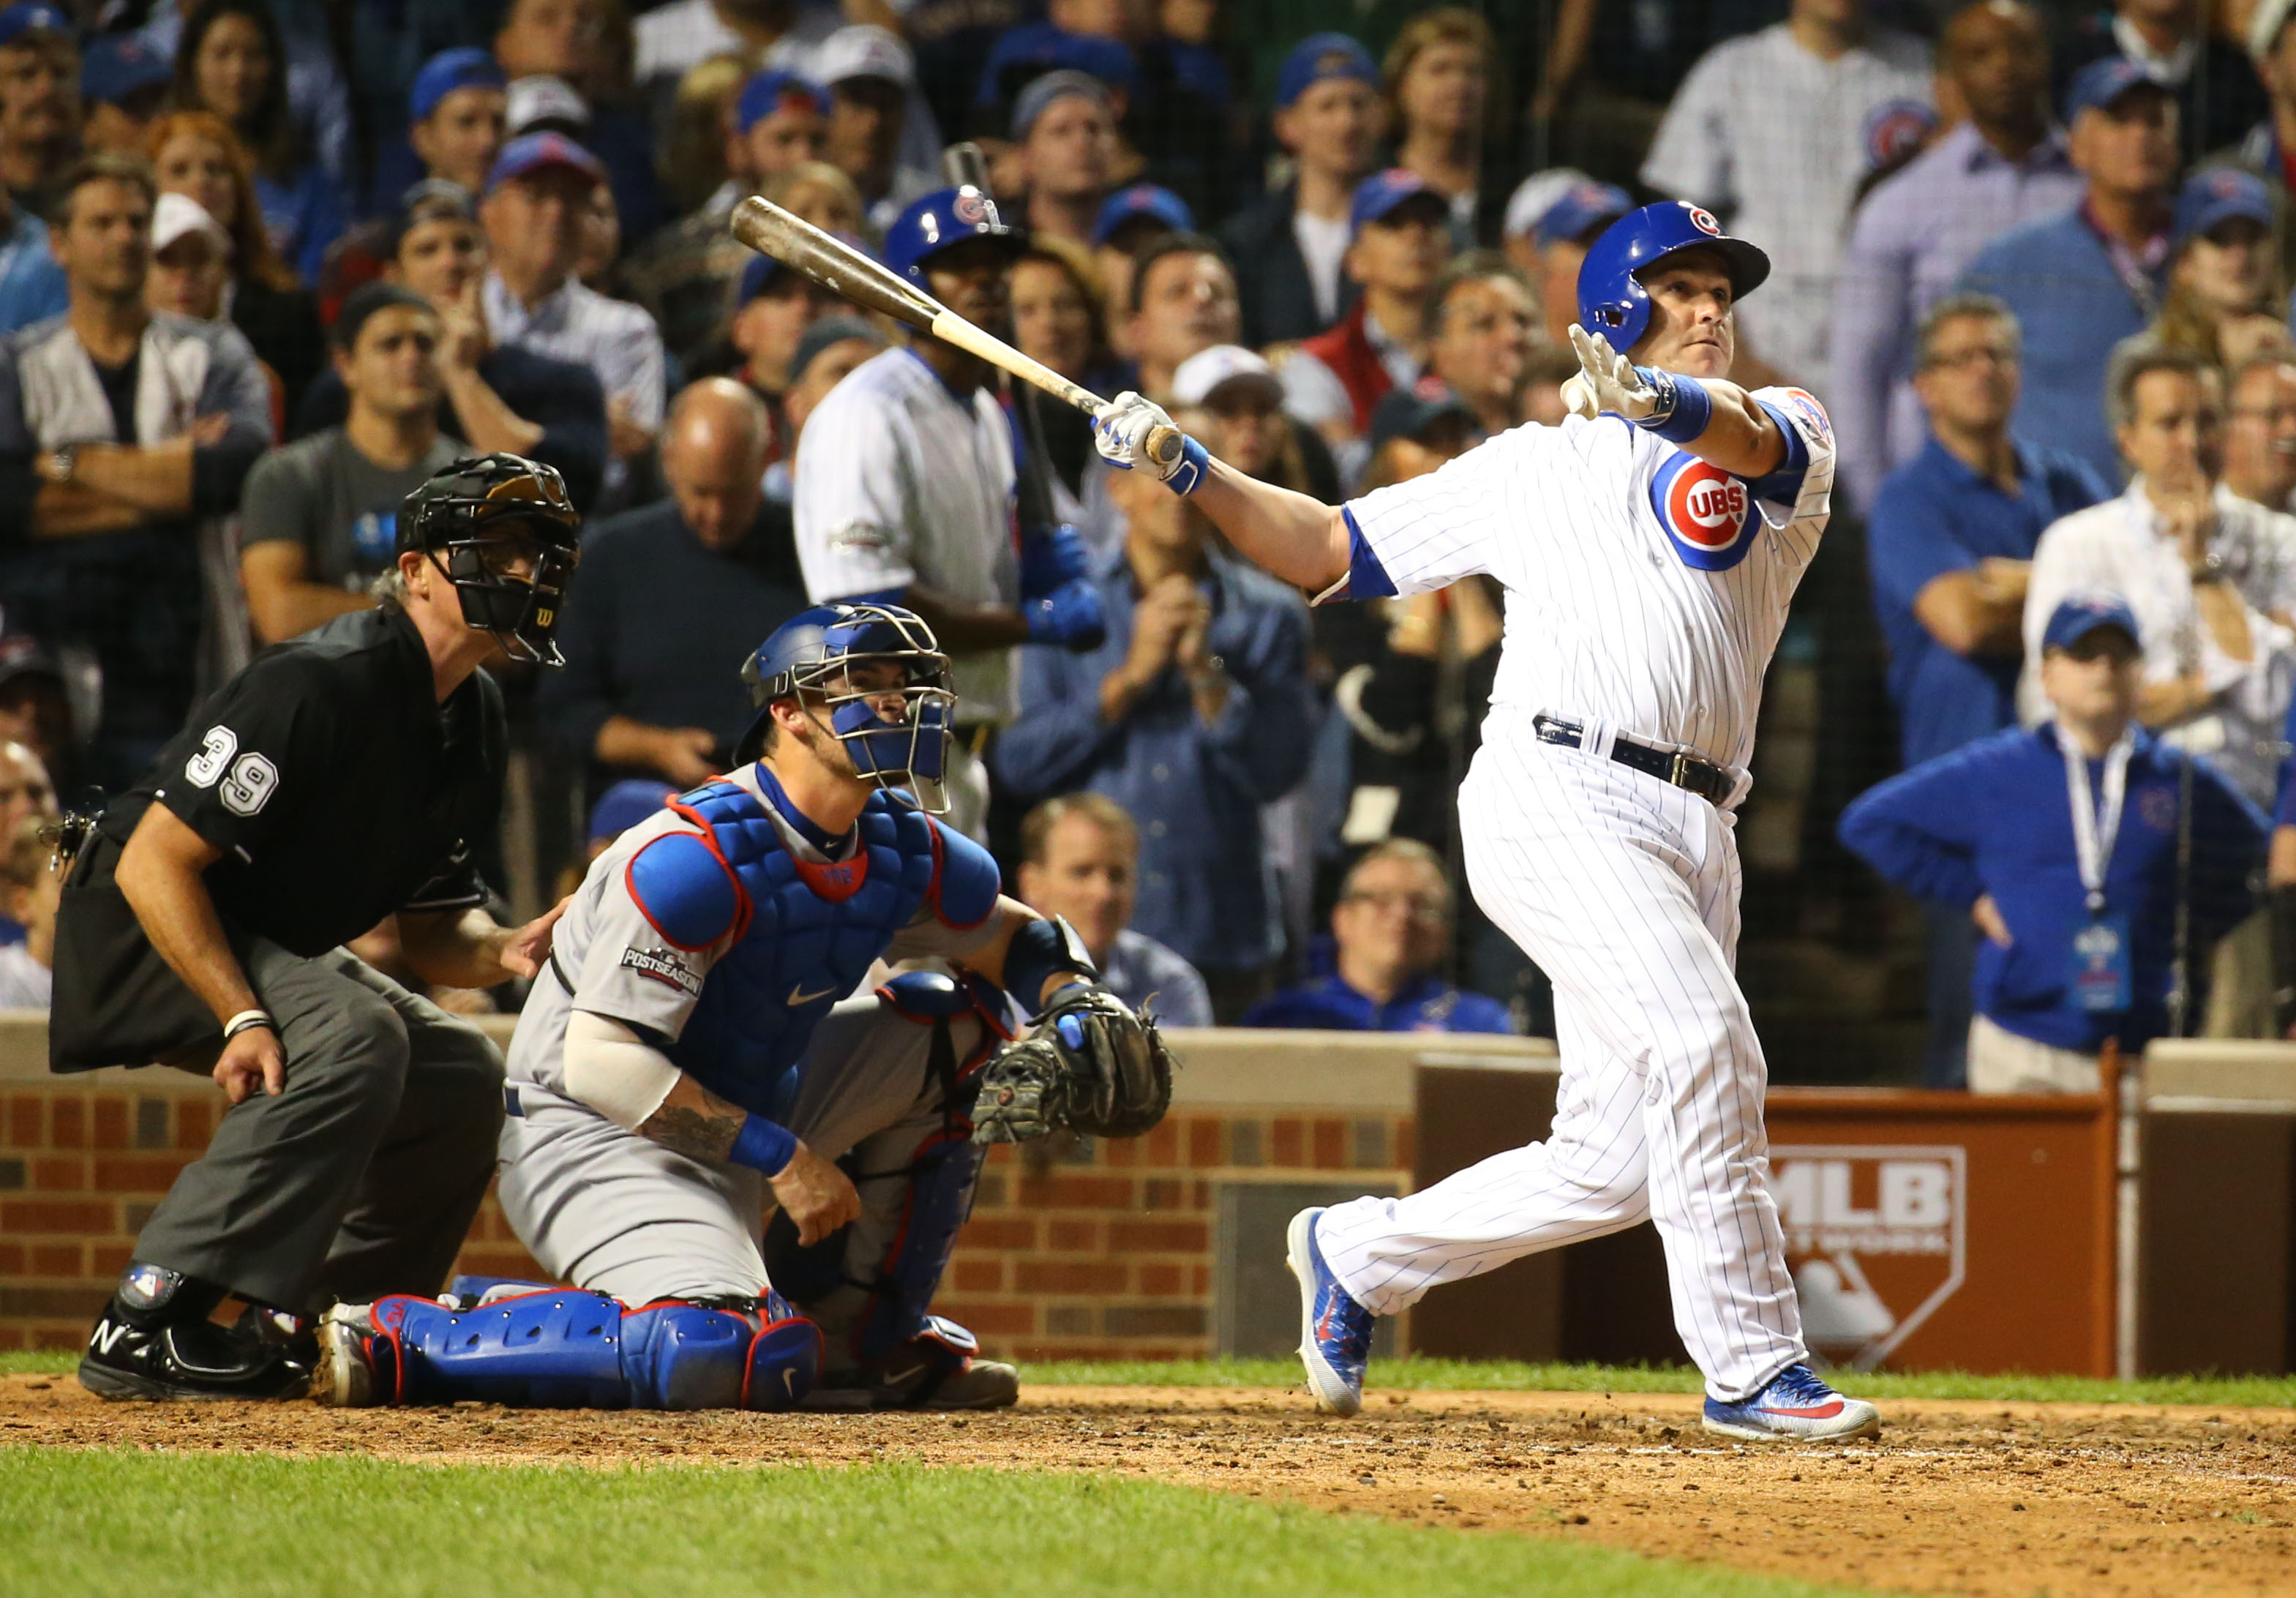 9609854-mlb-nlcs-los-angeles-dodgers-at-chicago-cubs